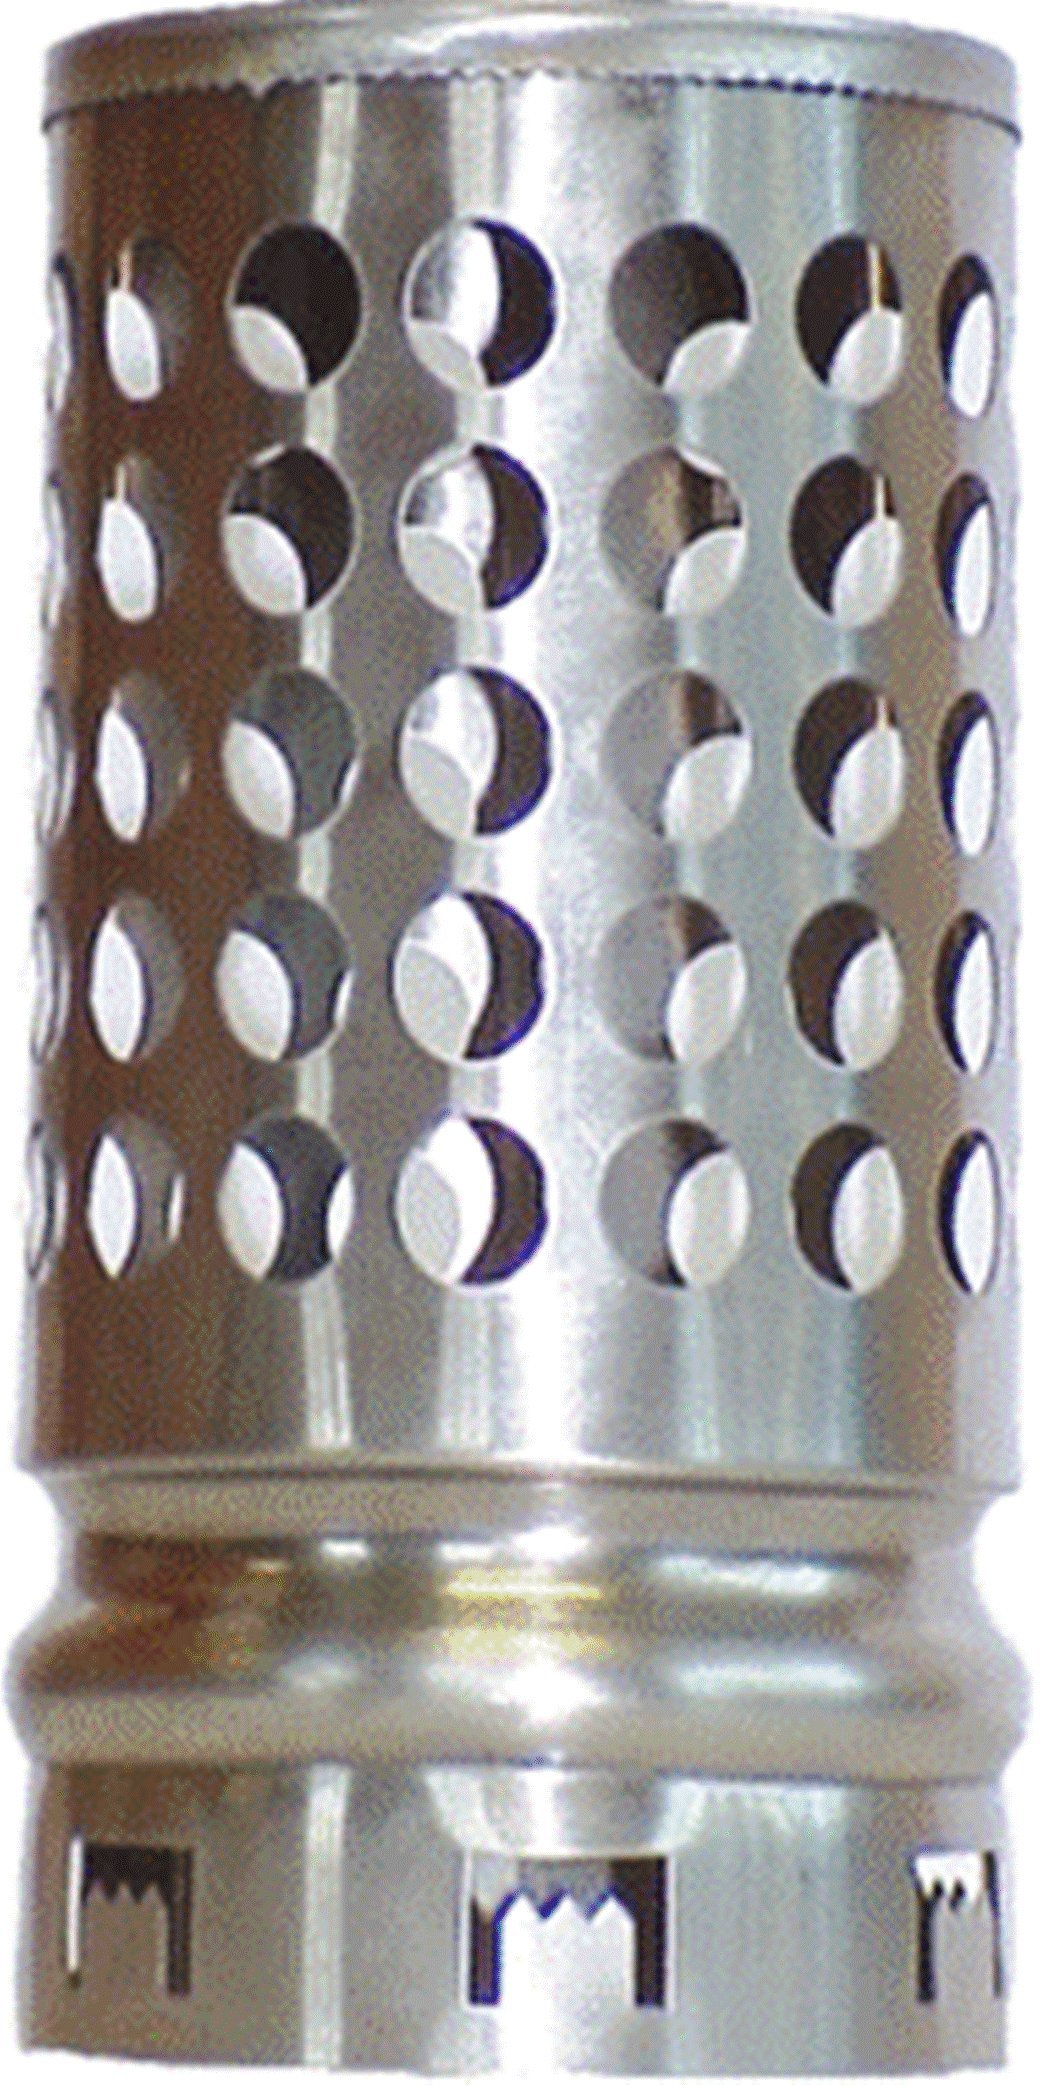 The Forever Cap CCSSVENT 4-Inch Stainless Steel Plumbing Vent Cap